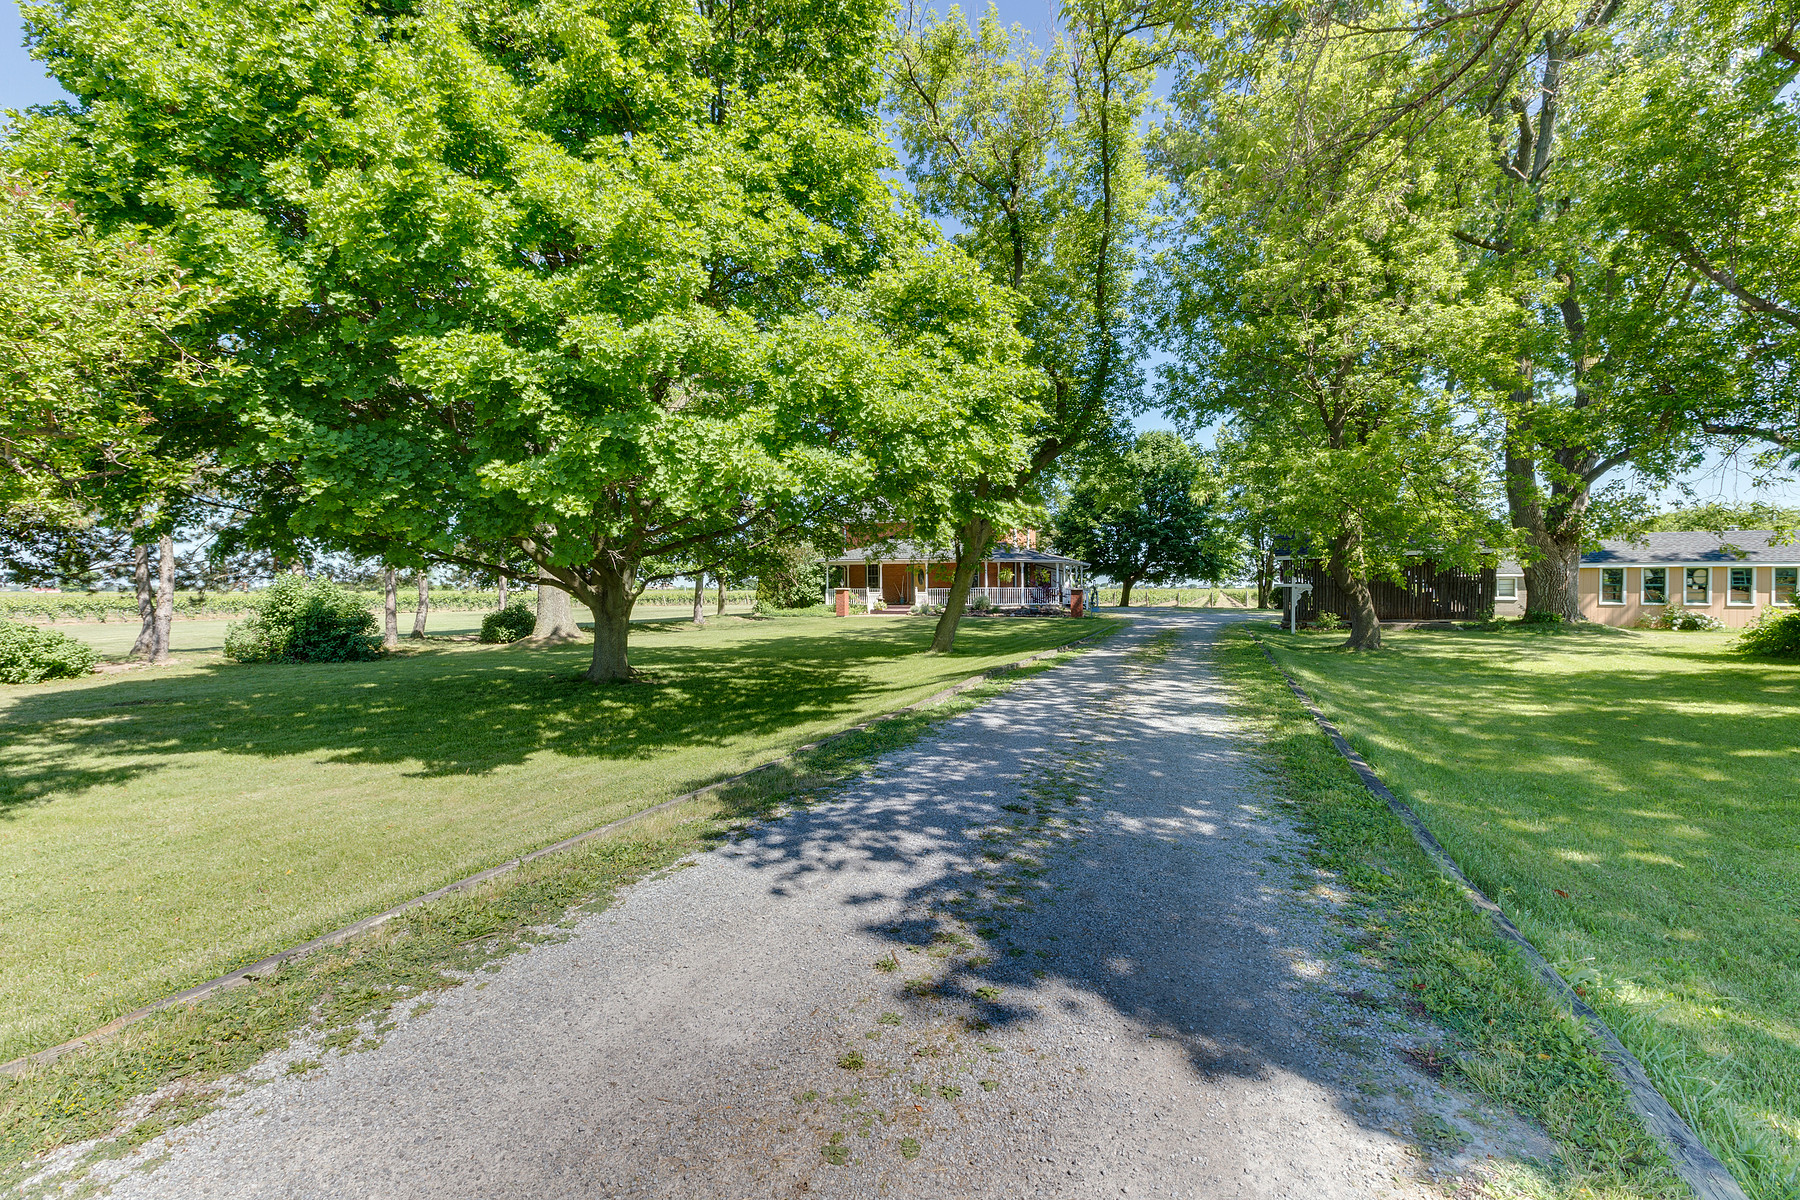 Multi-Family Home for Sale at Niagara Wine Country Living 1080 Line 3 Road Niagara On The Lake, Ontario, L0S1J0 Canada